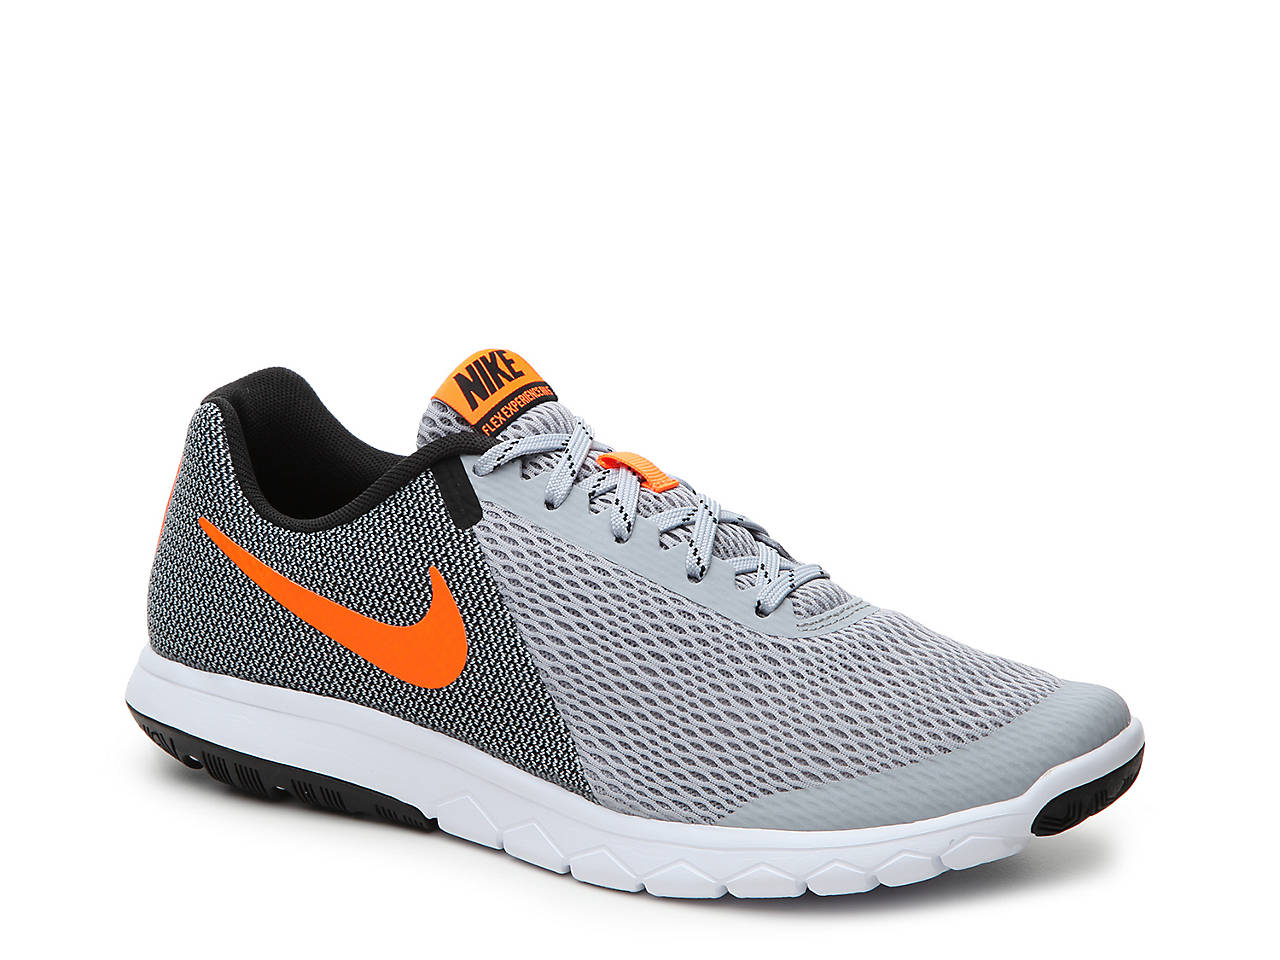 1cac74b1548 Nike Flex Experience Run 5 Lightweight Running Shoe - Men s Men s ...